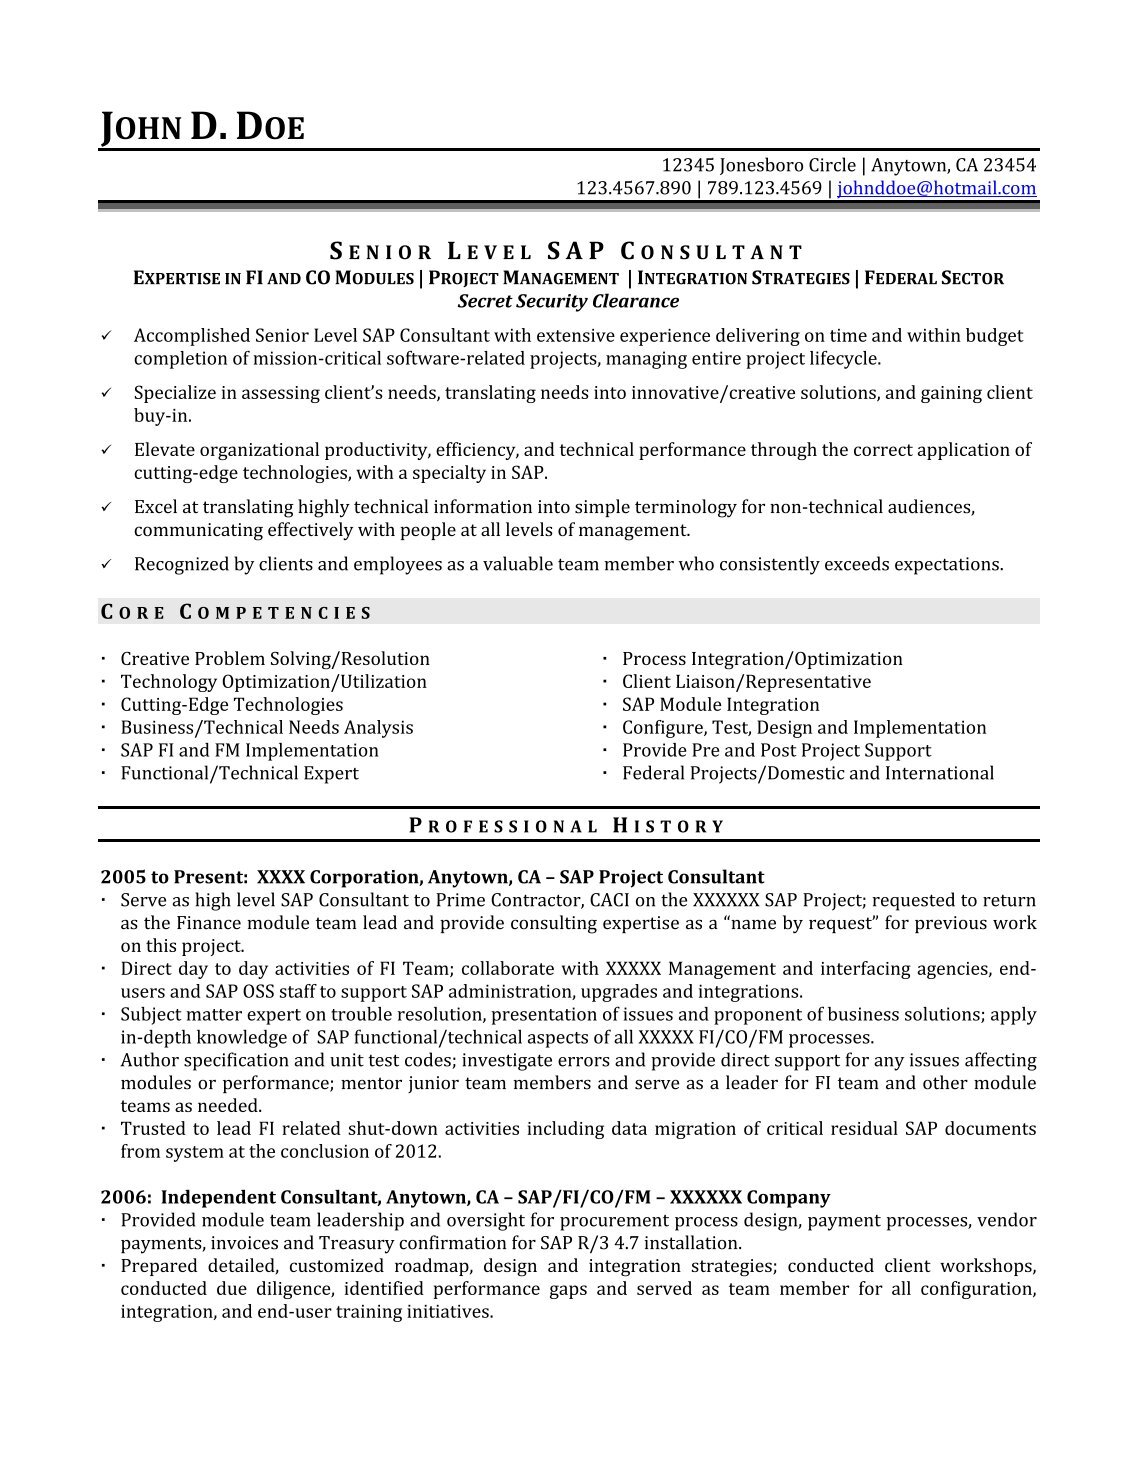 100 Consultant Resume Format Resume Help With Cv Free How